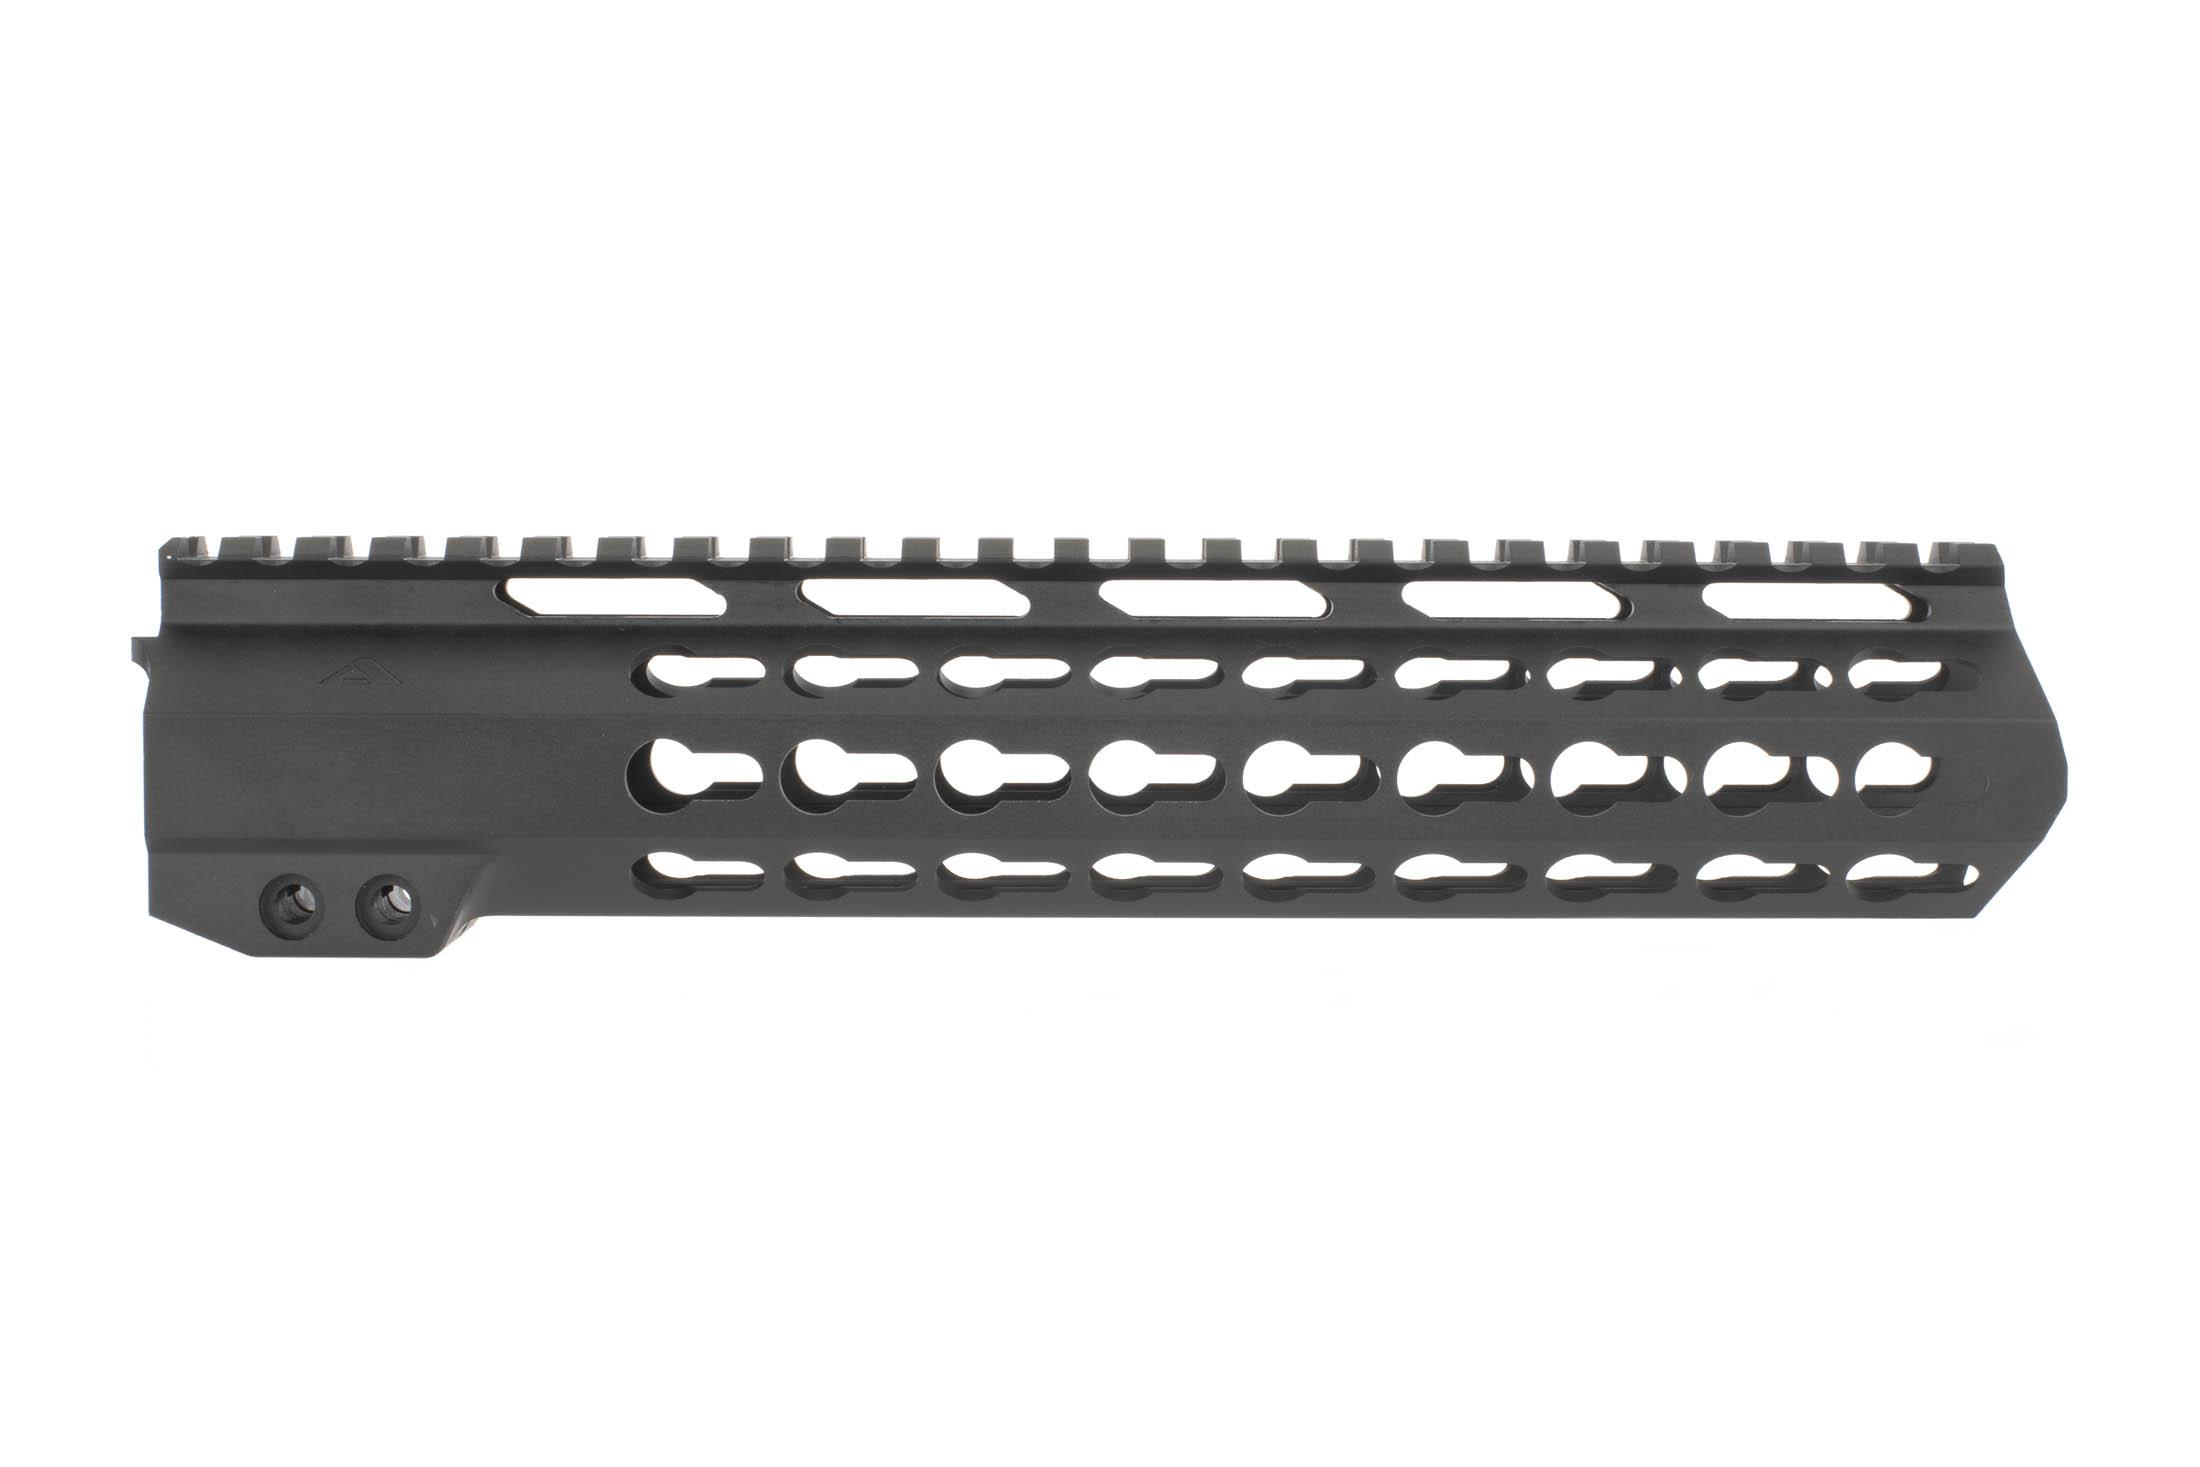 Aim Sports AR-15 Gen II 10in Free Float KeyMod Rail has a durable anodized black finish